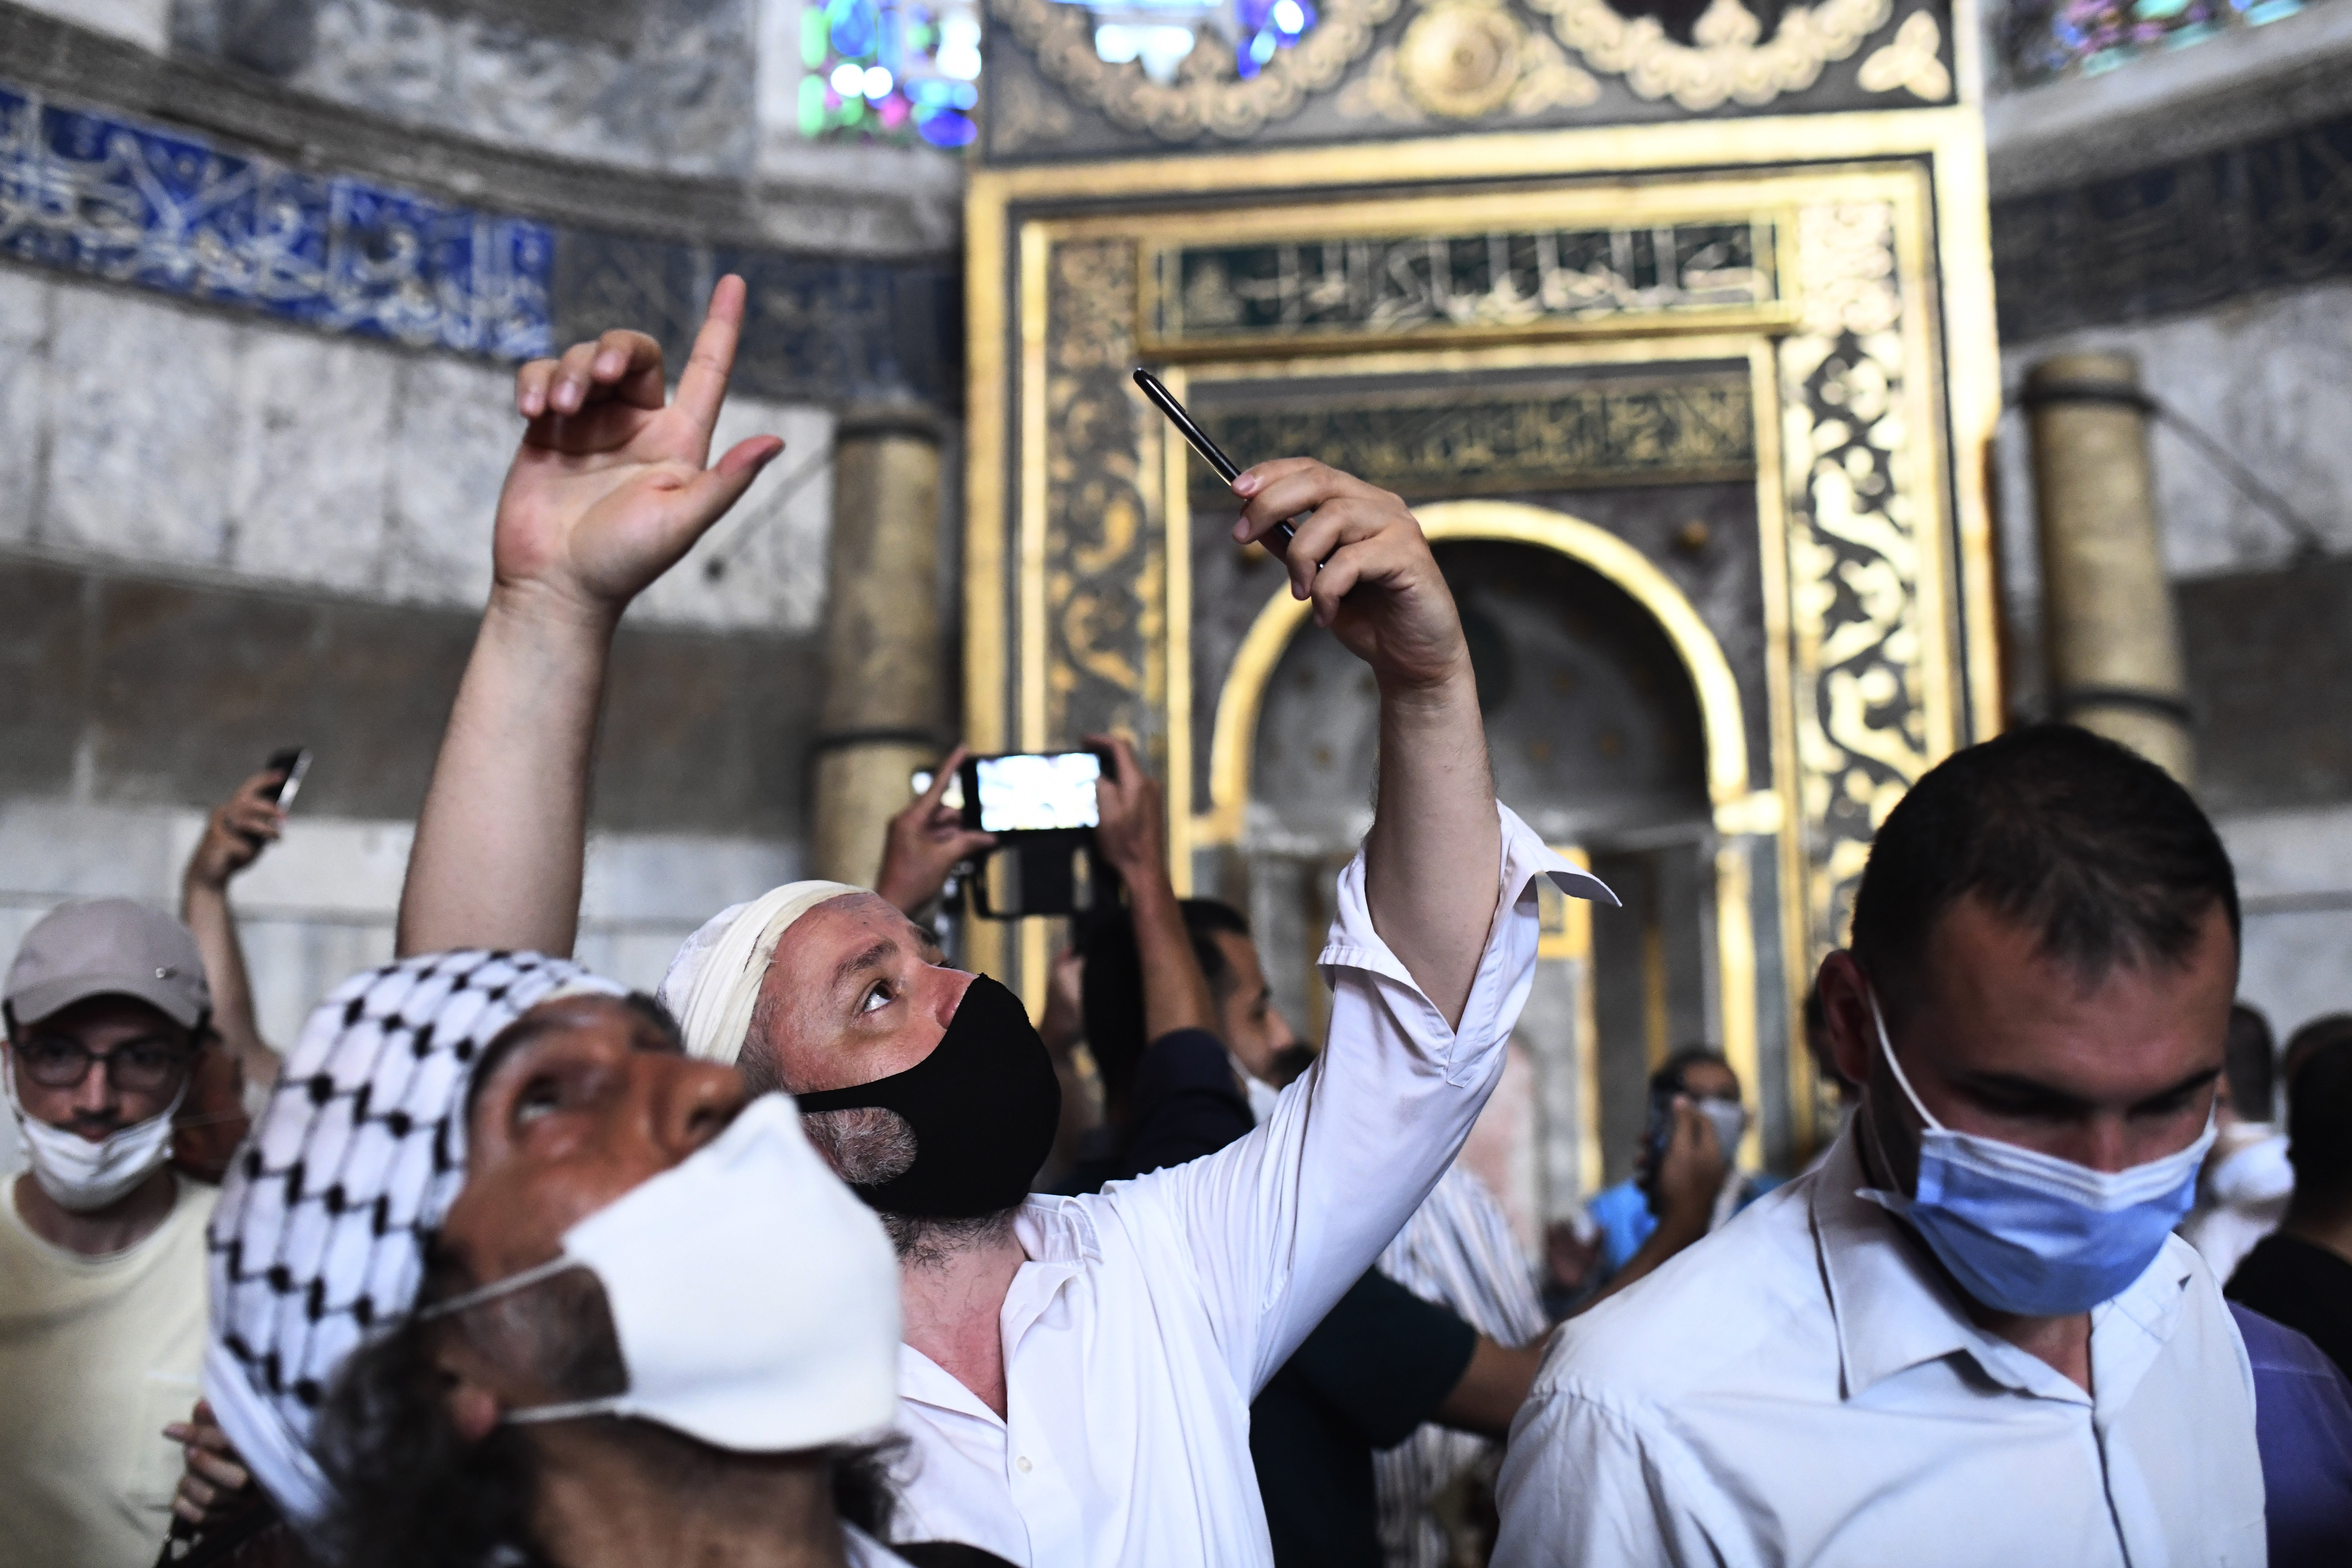 People use their mobile phones to take pictures inside the Hagia Sophia July 24, 2020.